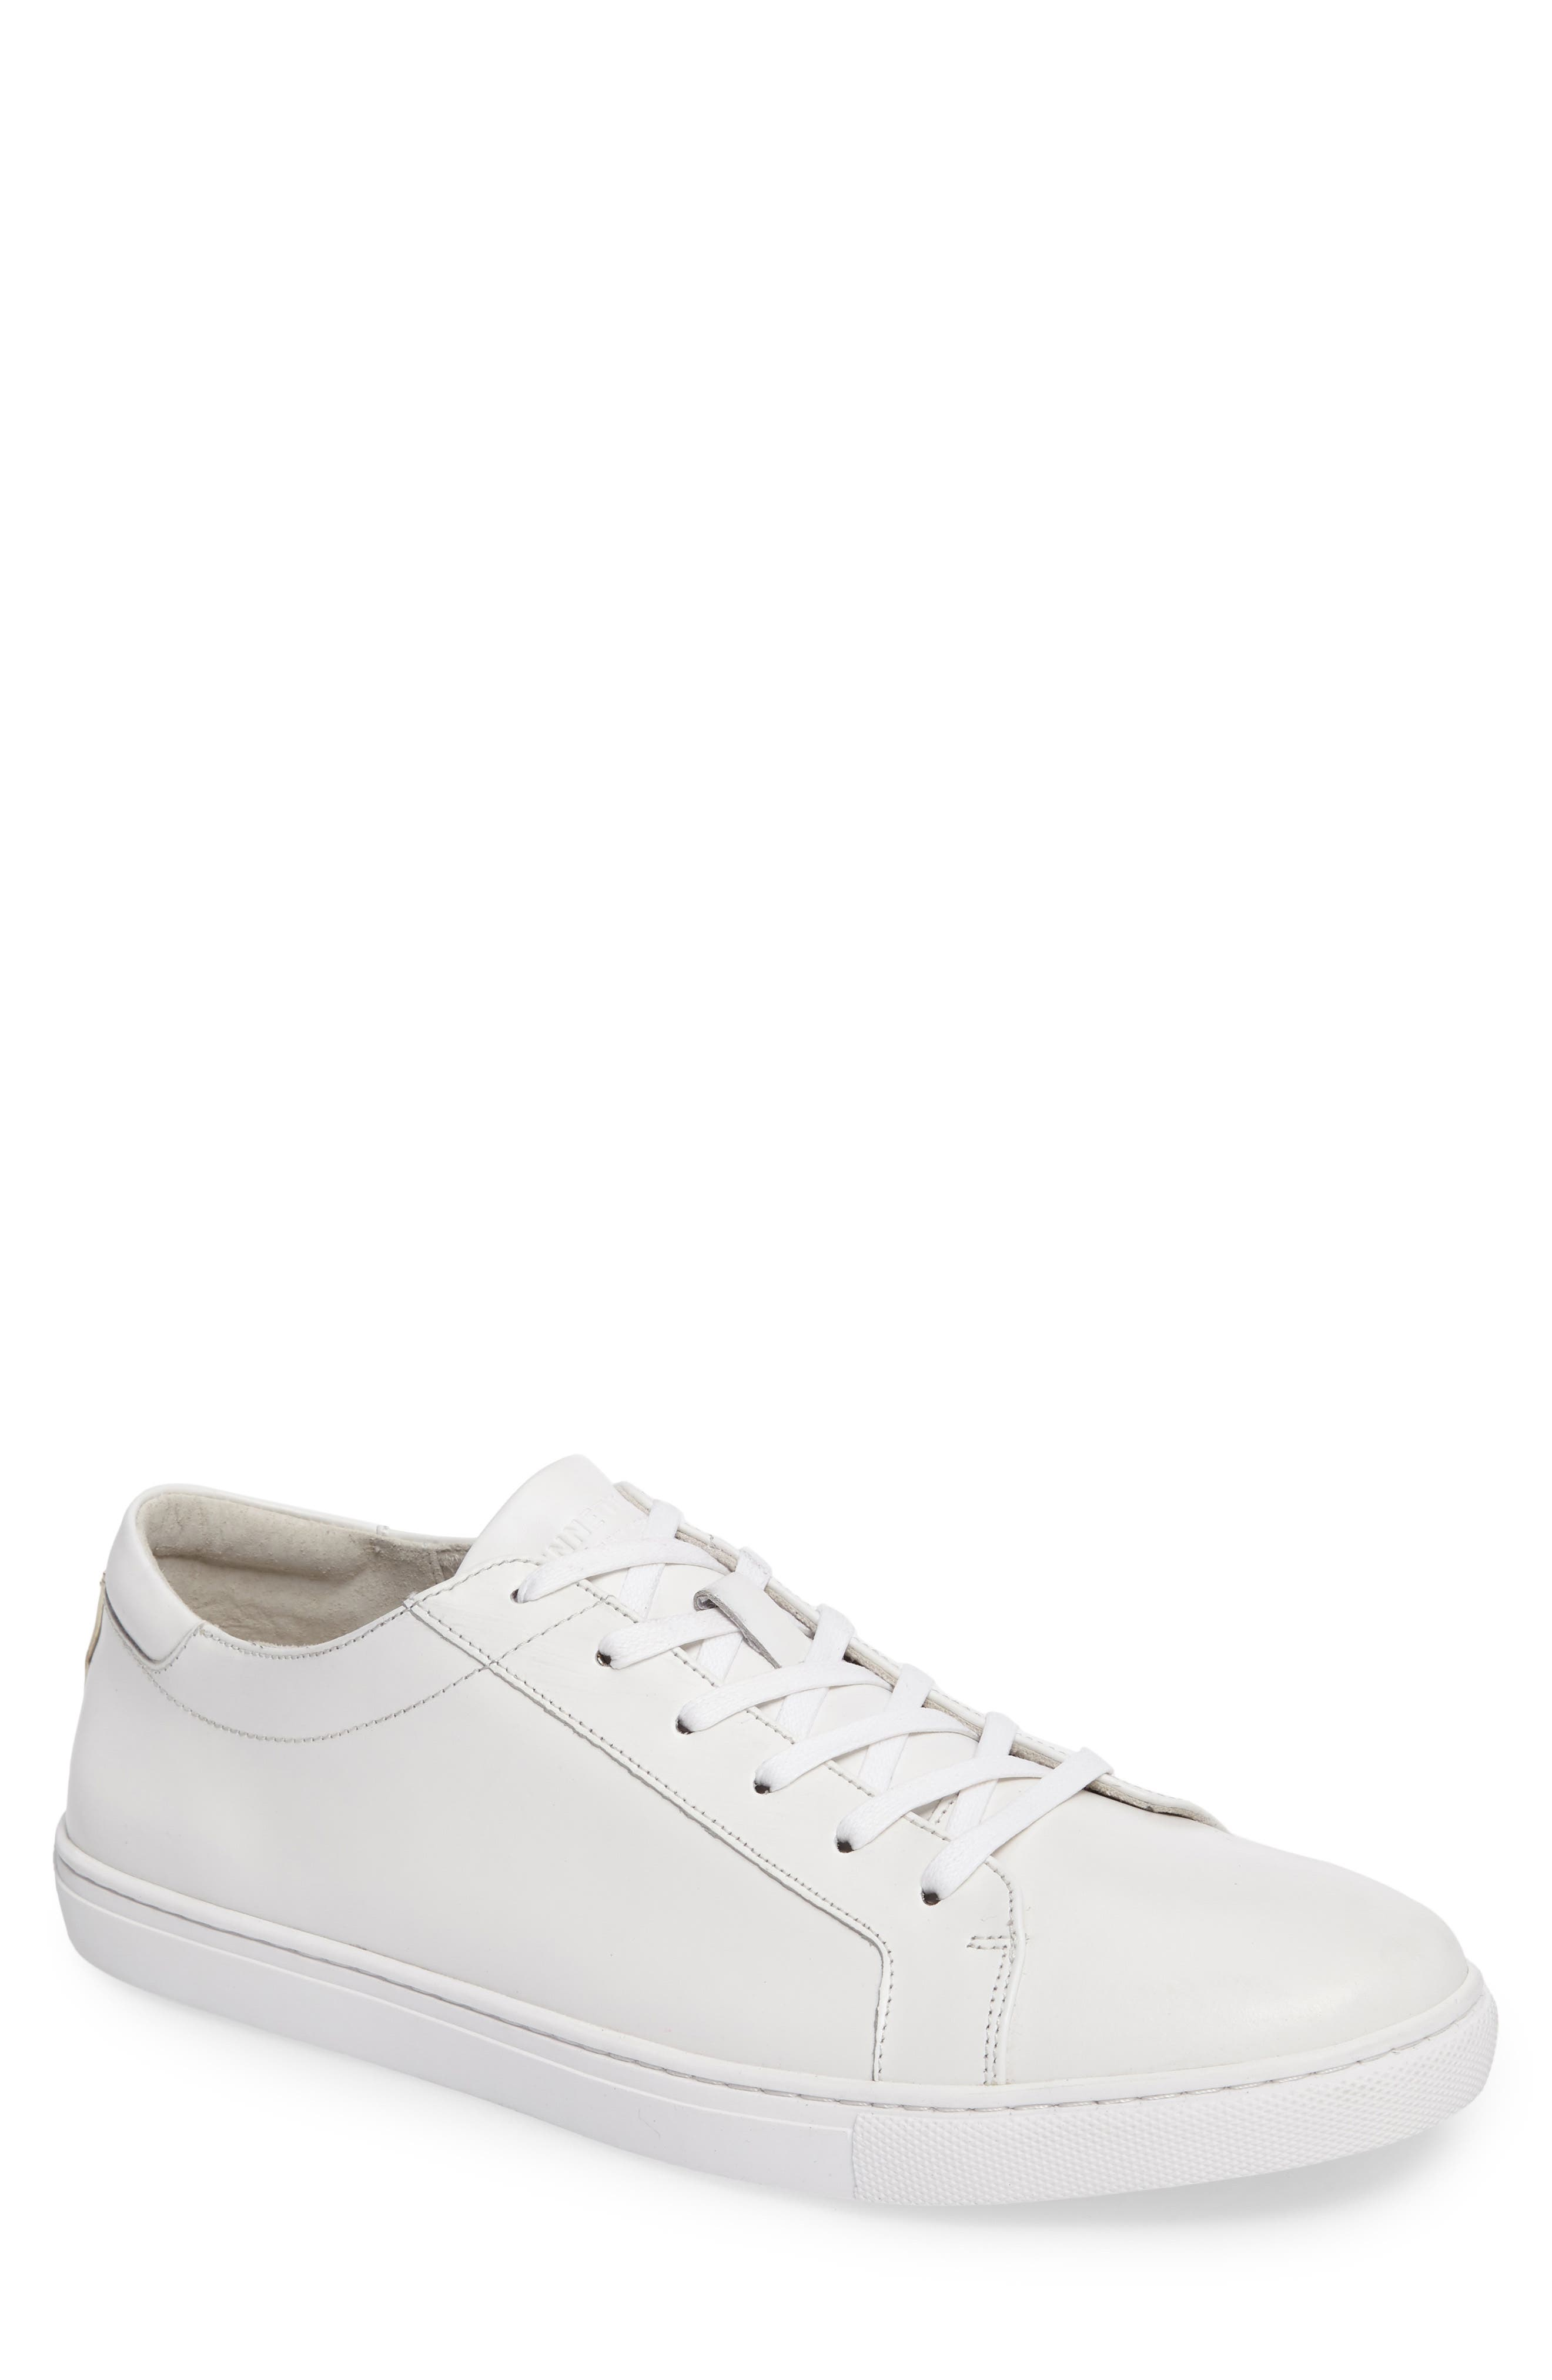 Main Image - Kenneth Cole New York Kam Sneaker (Men)